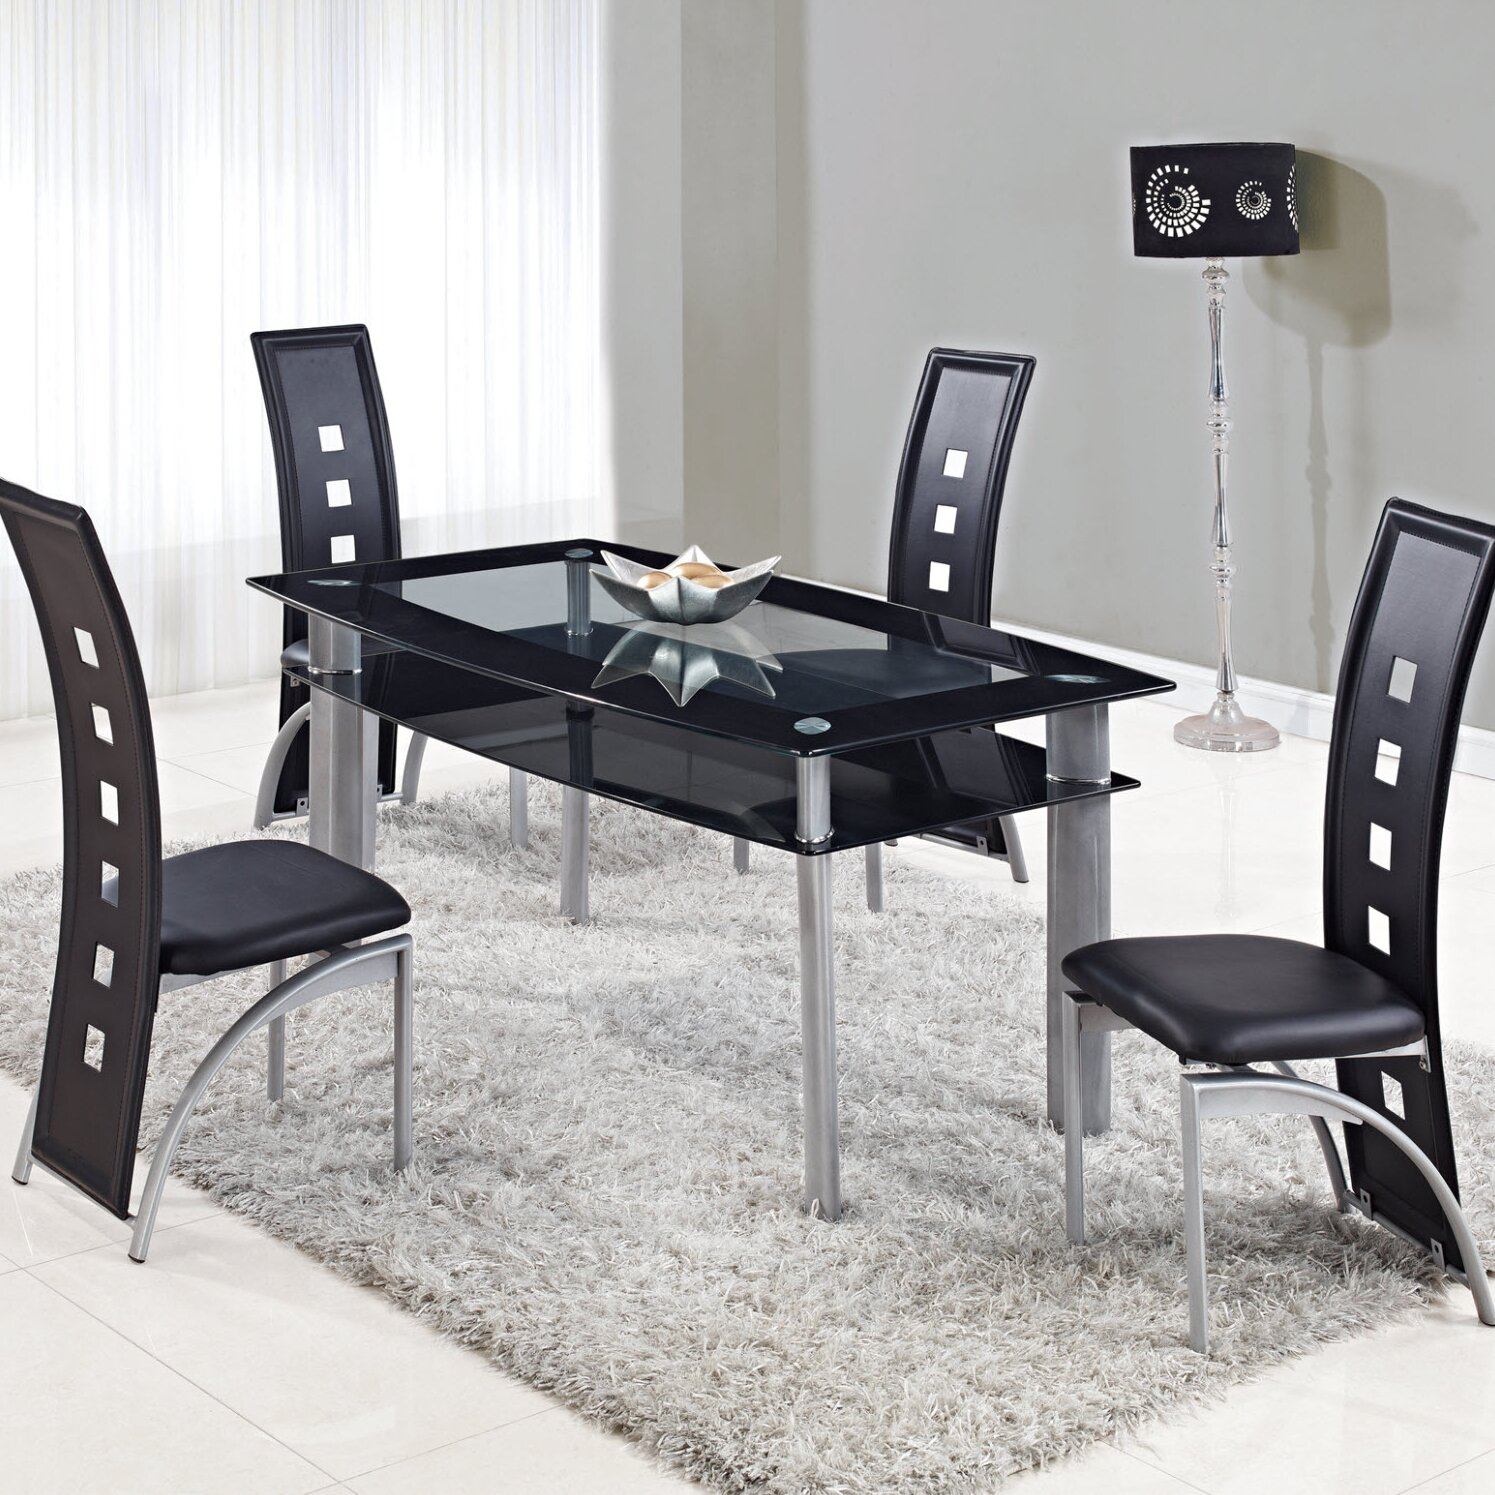 Global Furniture Usa Dining Table  Wayfair. 10 Person Dining Room Table. Letter Wall Decor. Curtains For Girls Room. Big Living Room Rugs. Decorative Gate Hinges. Conference Room Phones. Rooms For Rent Atlanta. Paint For Girl Room